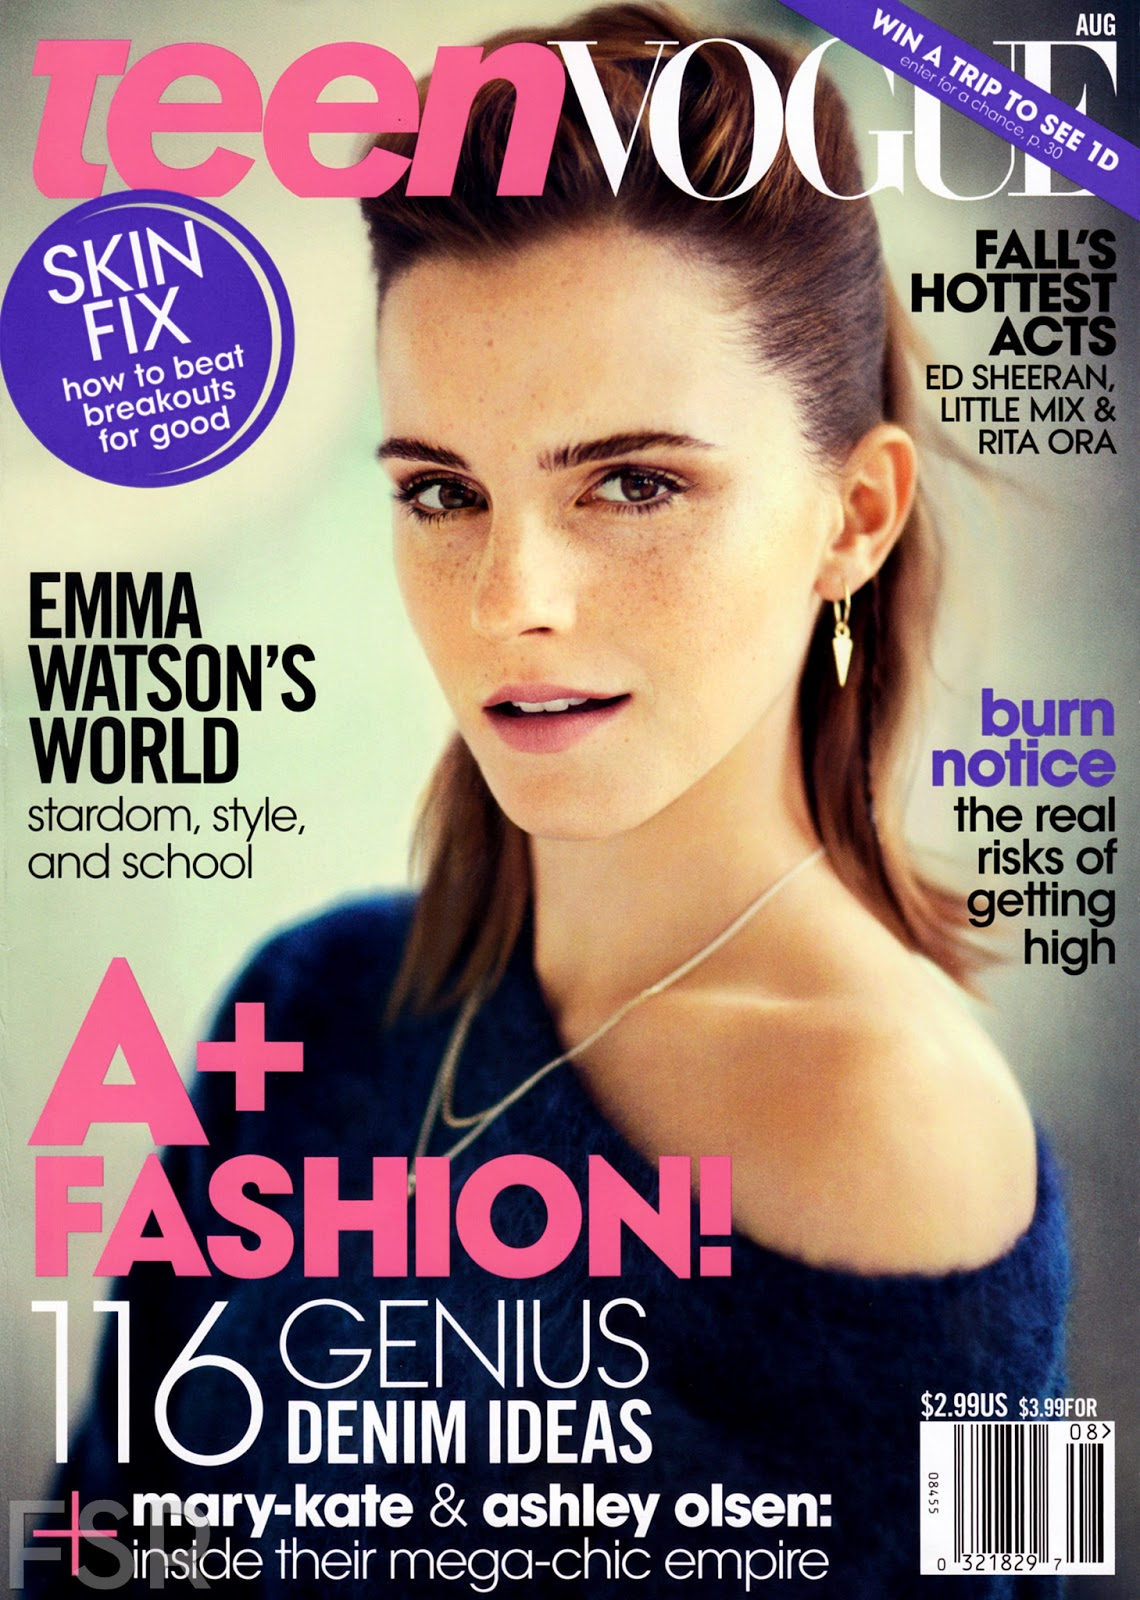 Teen Vogue Magazine Us March 2015 Cover: Retro Bikini: Emma Watson Graces The Cover Of Teen Vogue